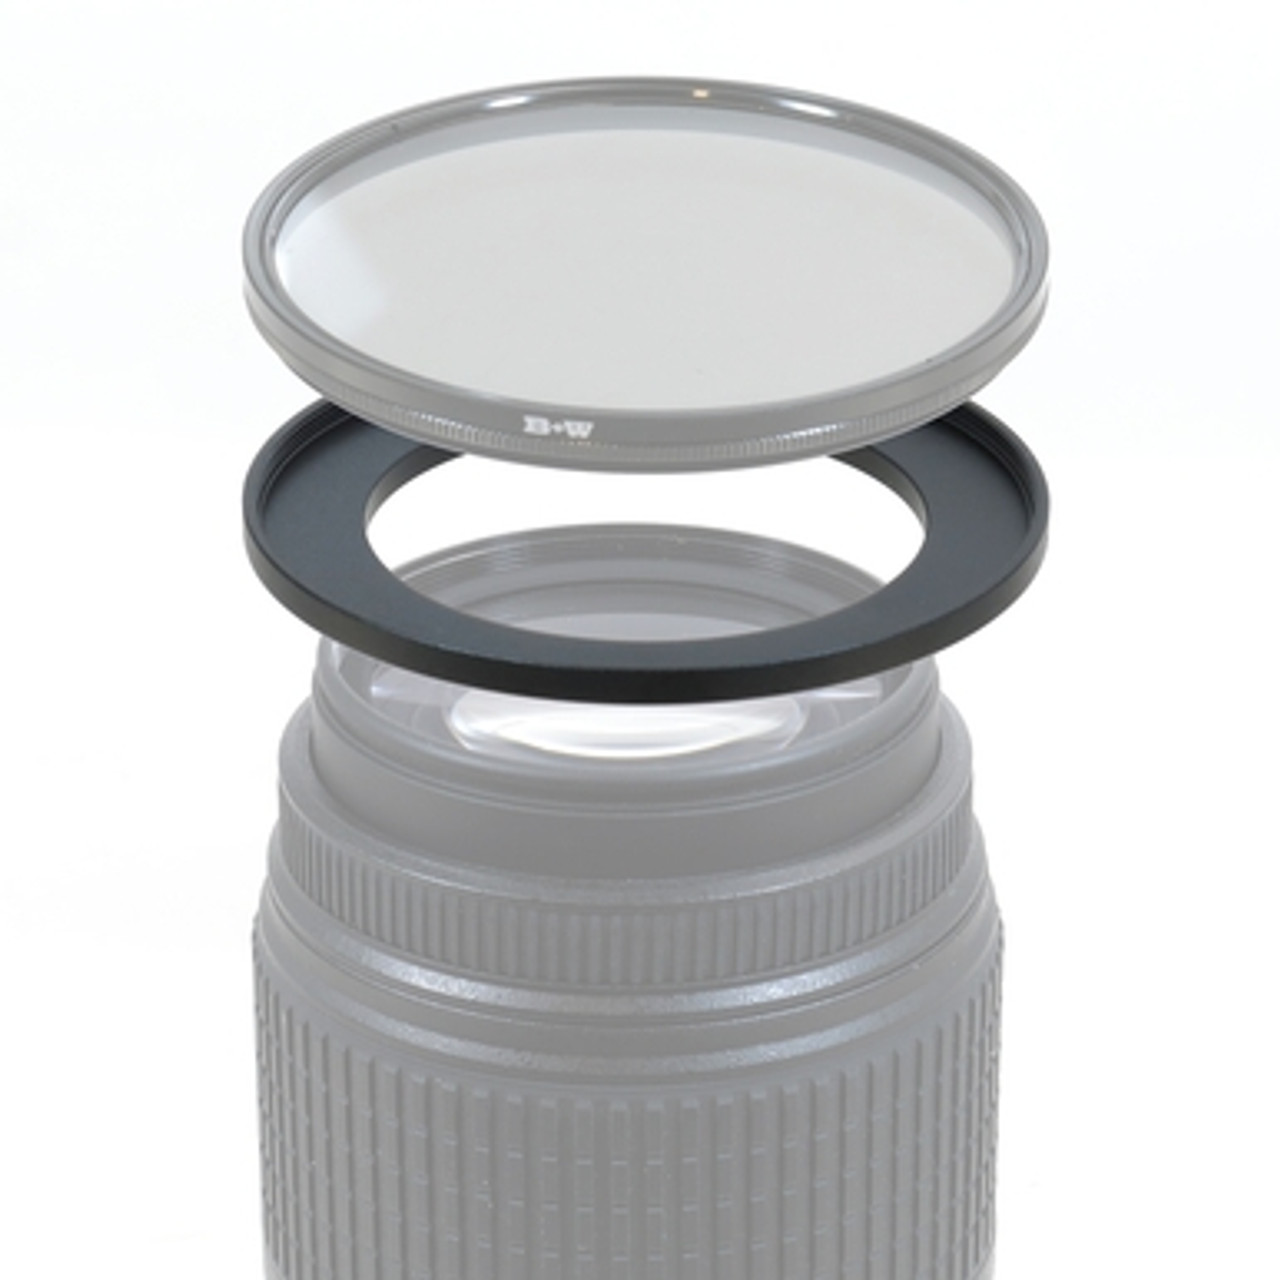 FILTER STEP-UP ADAPTER RING (37-49)